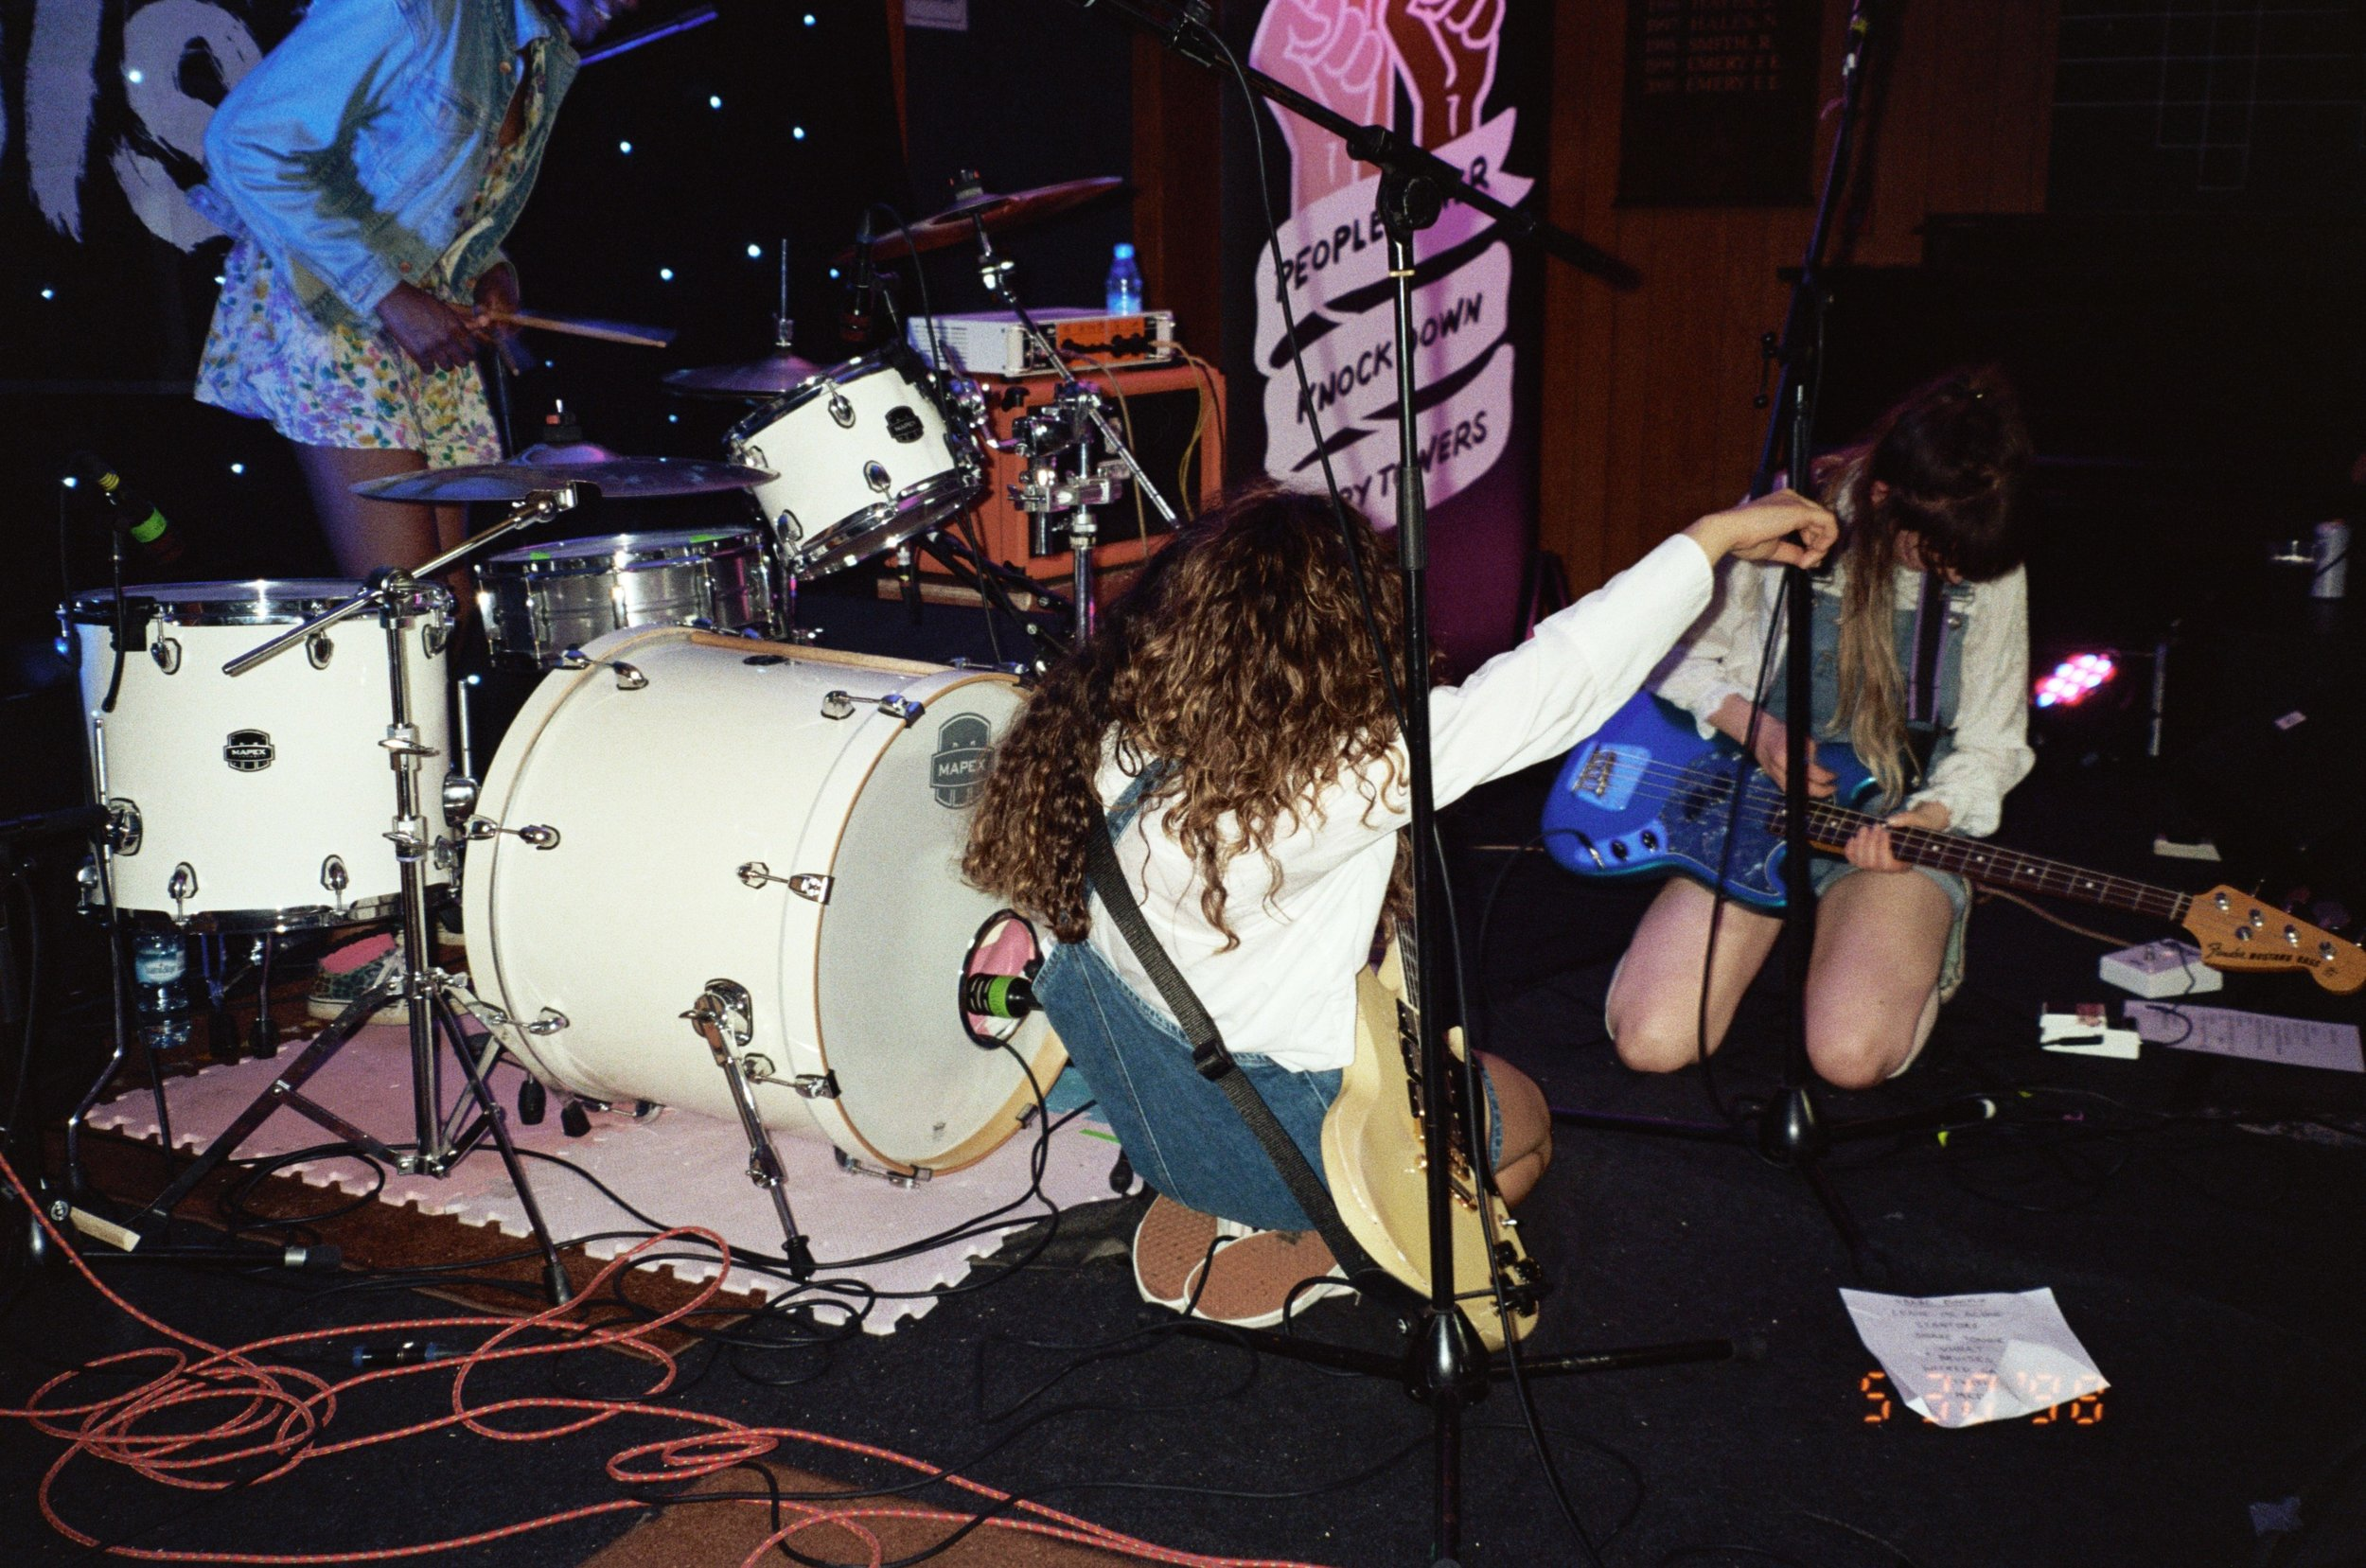 The Tuts @ Brudenell Games Room